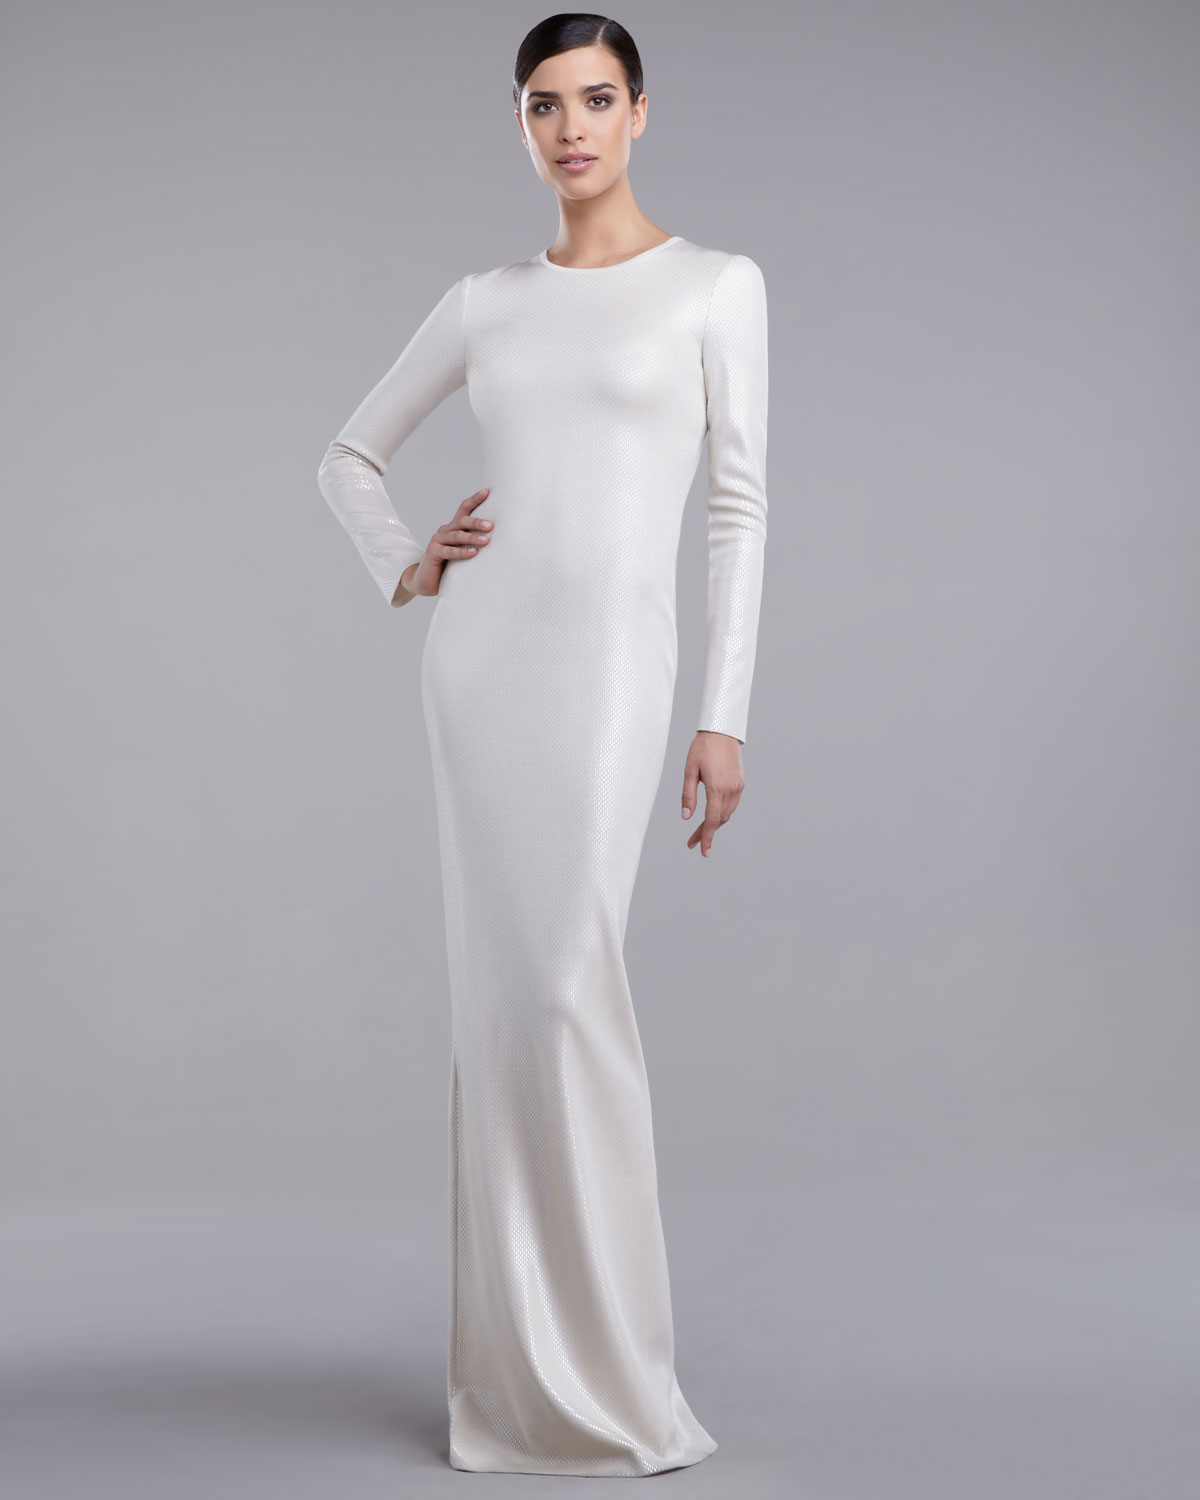 Lyst - St. John Milano Sequin Gown in White